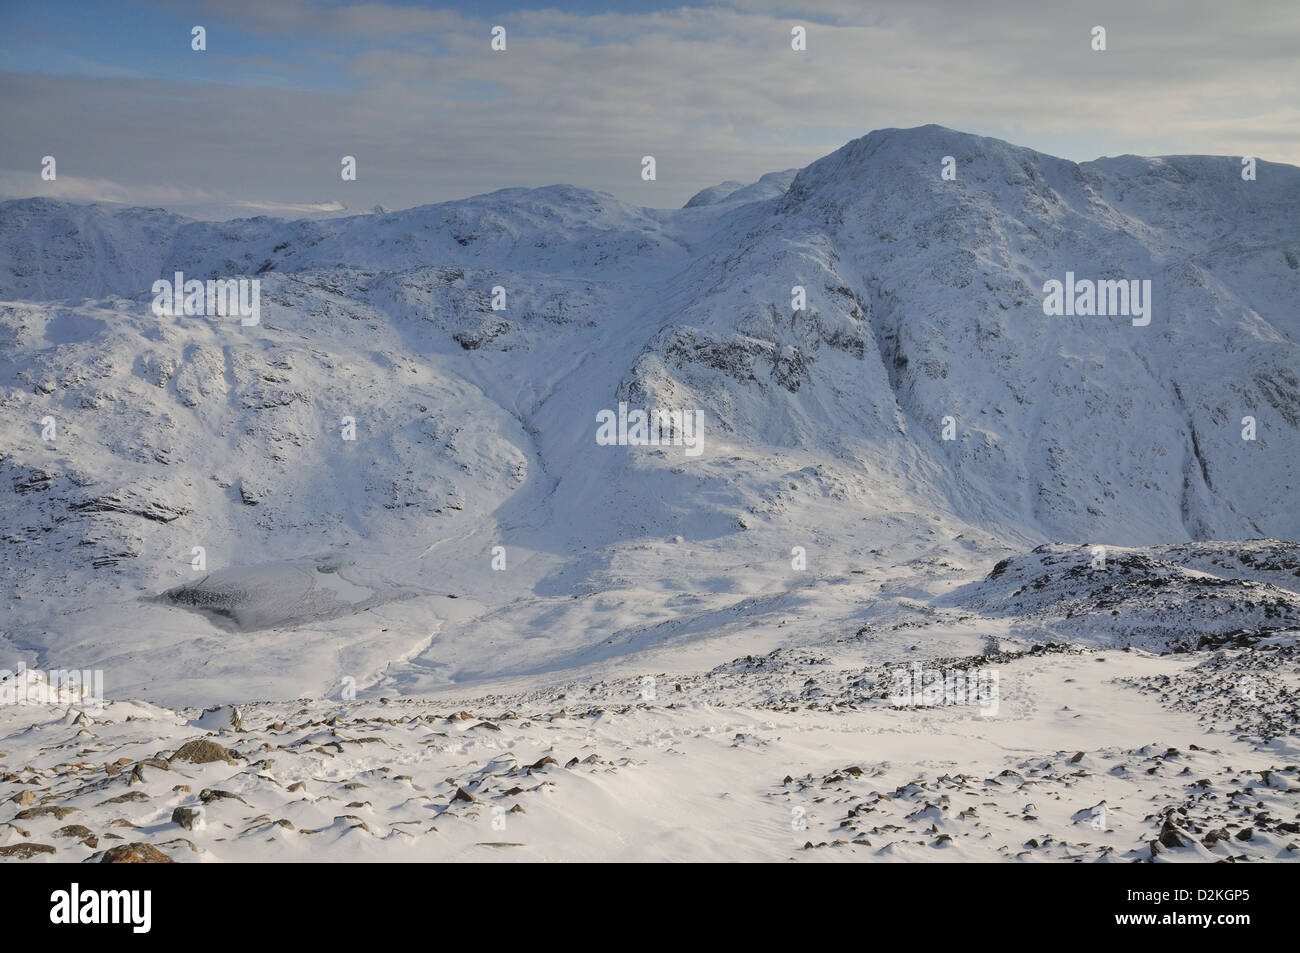 View of frozen Styhead Tarn, Great Slack, and Great End from Great Gable in winter in the English Lake District - Stock Image